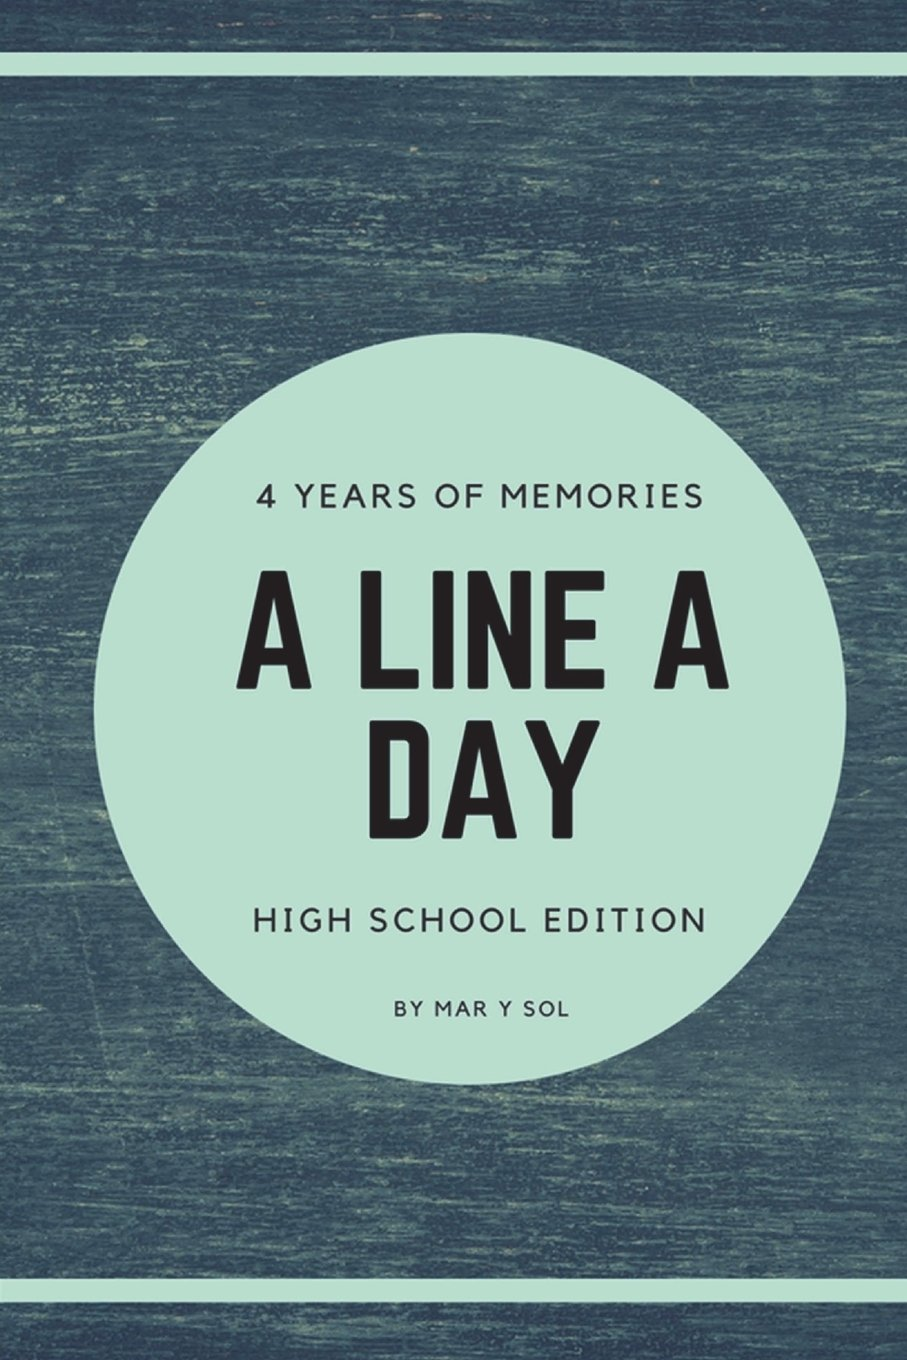 Download A Line A Day High School Edition: 4 years of memories - Daily Journal - Inspirational & Motivational - Blue Denim Print Cover (Volume 15) PDF